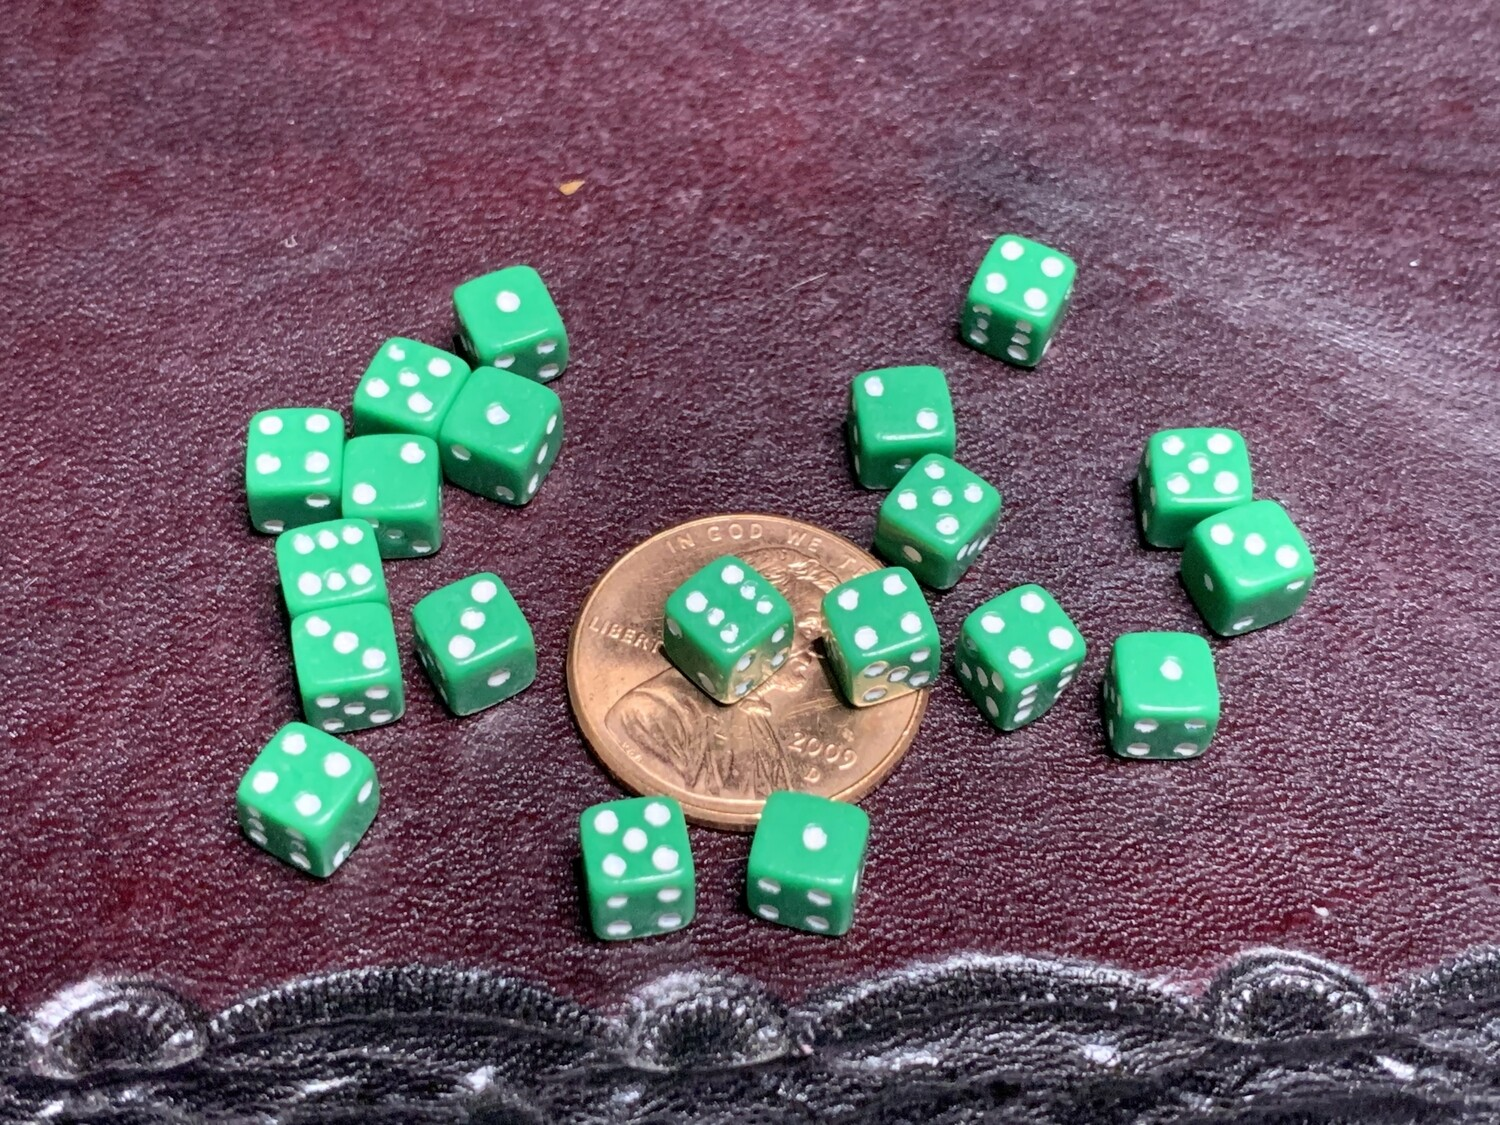 Twenty 5MM Opaque Green with White Color Gaming Dice RPG Tabletop Gaming CCG Tokens